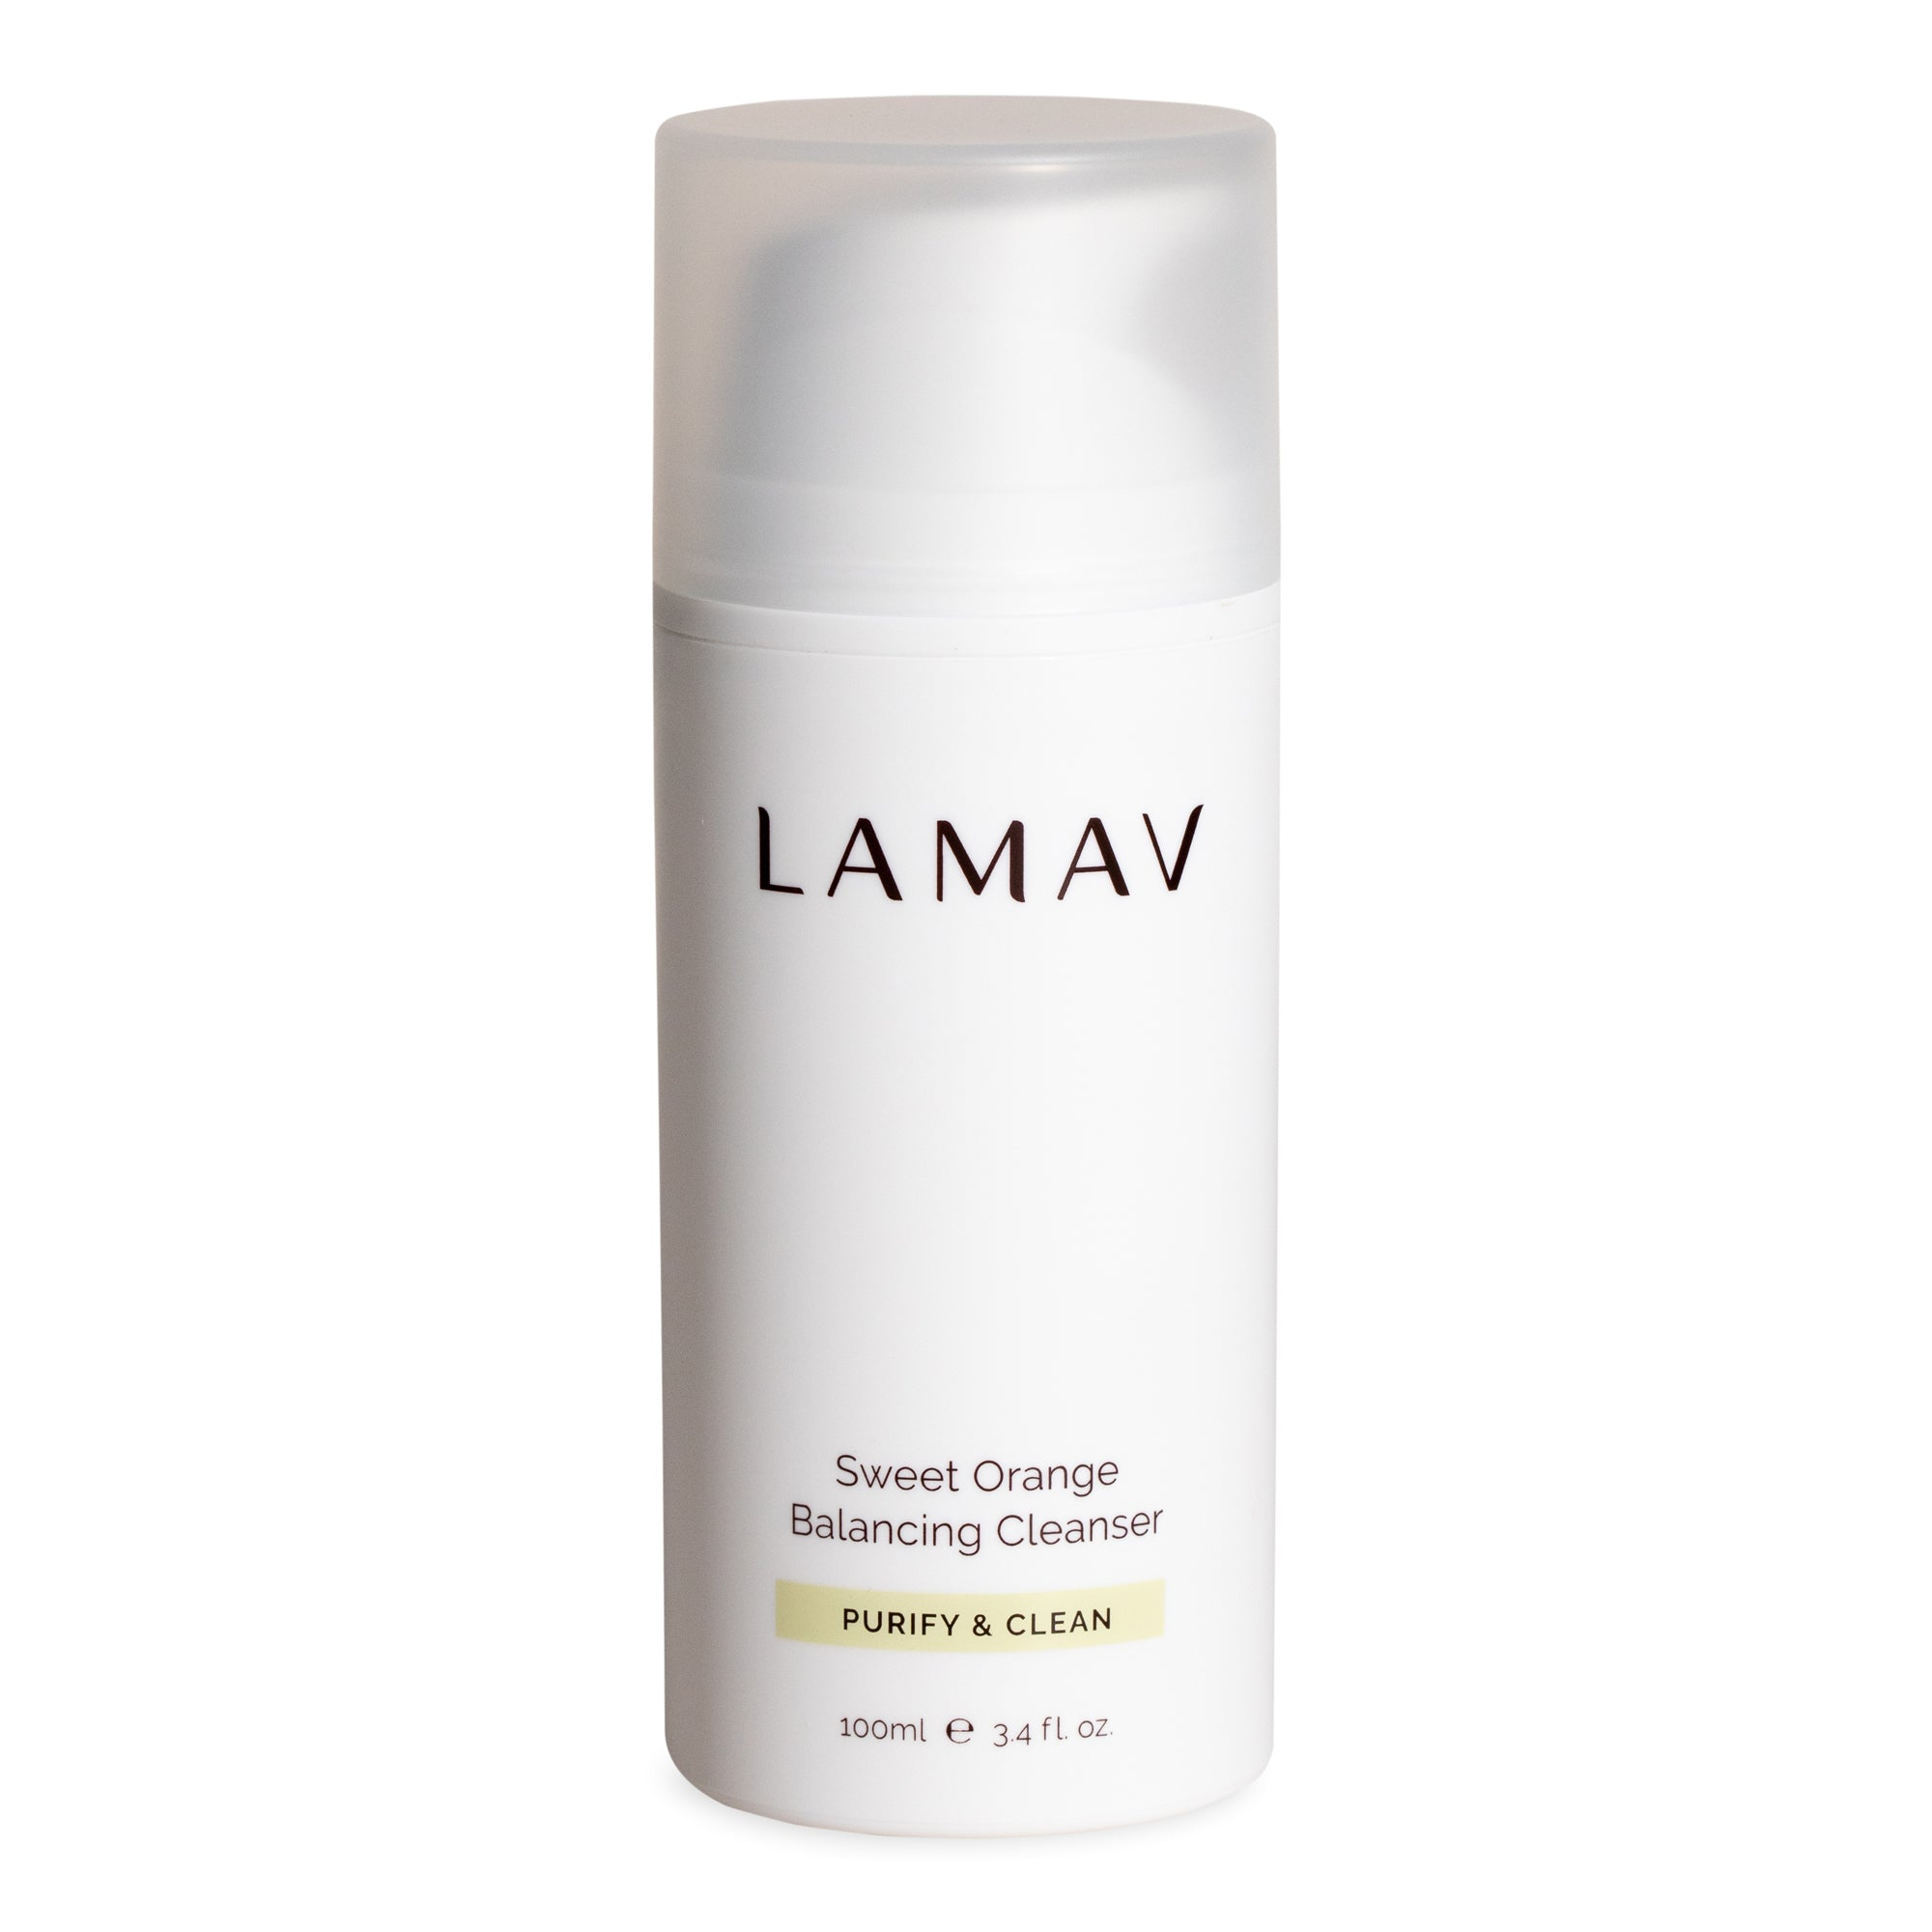 LaMav Sweet Orange Balancing Cleanser. A purifying deep cleansing gel formulated to clean and balance oily and combination skin. Shop at Skinbase Beauty.